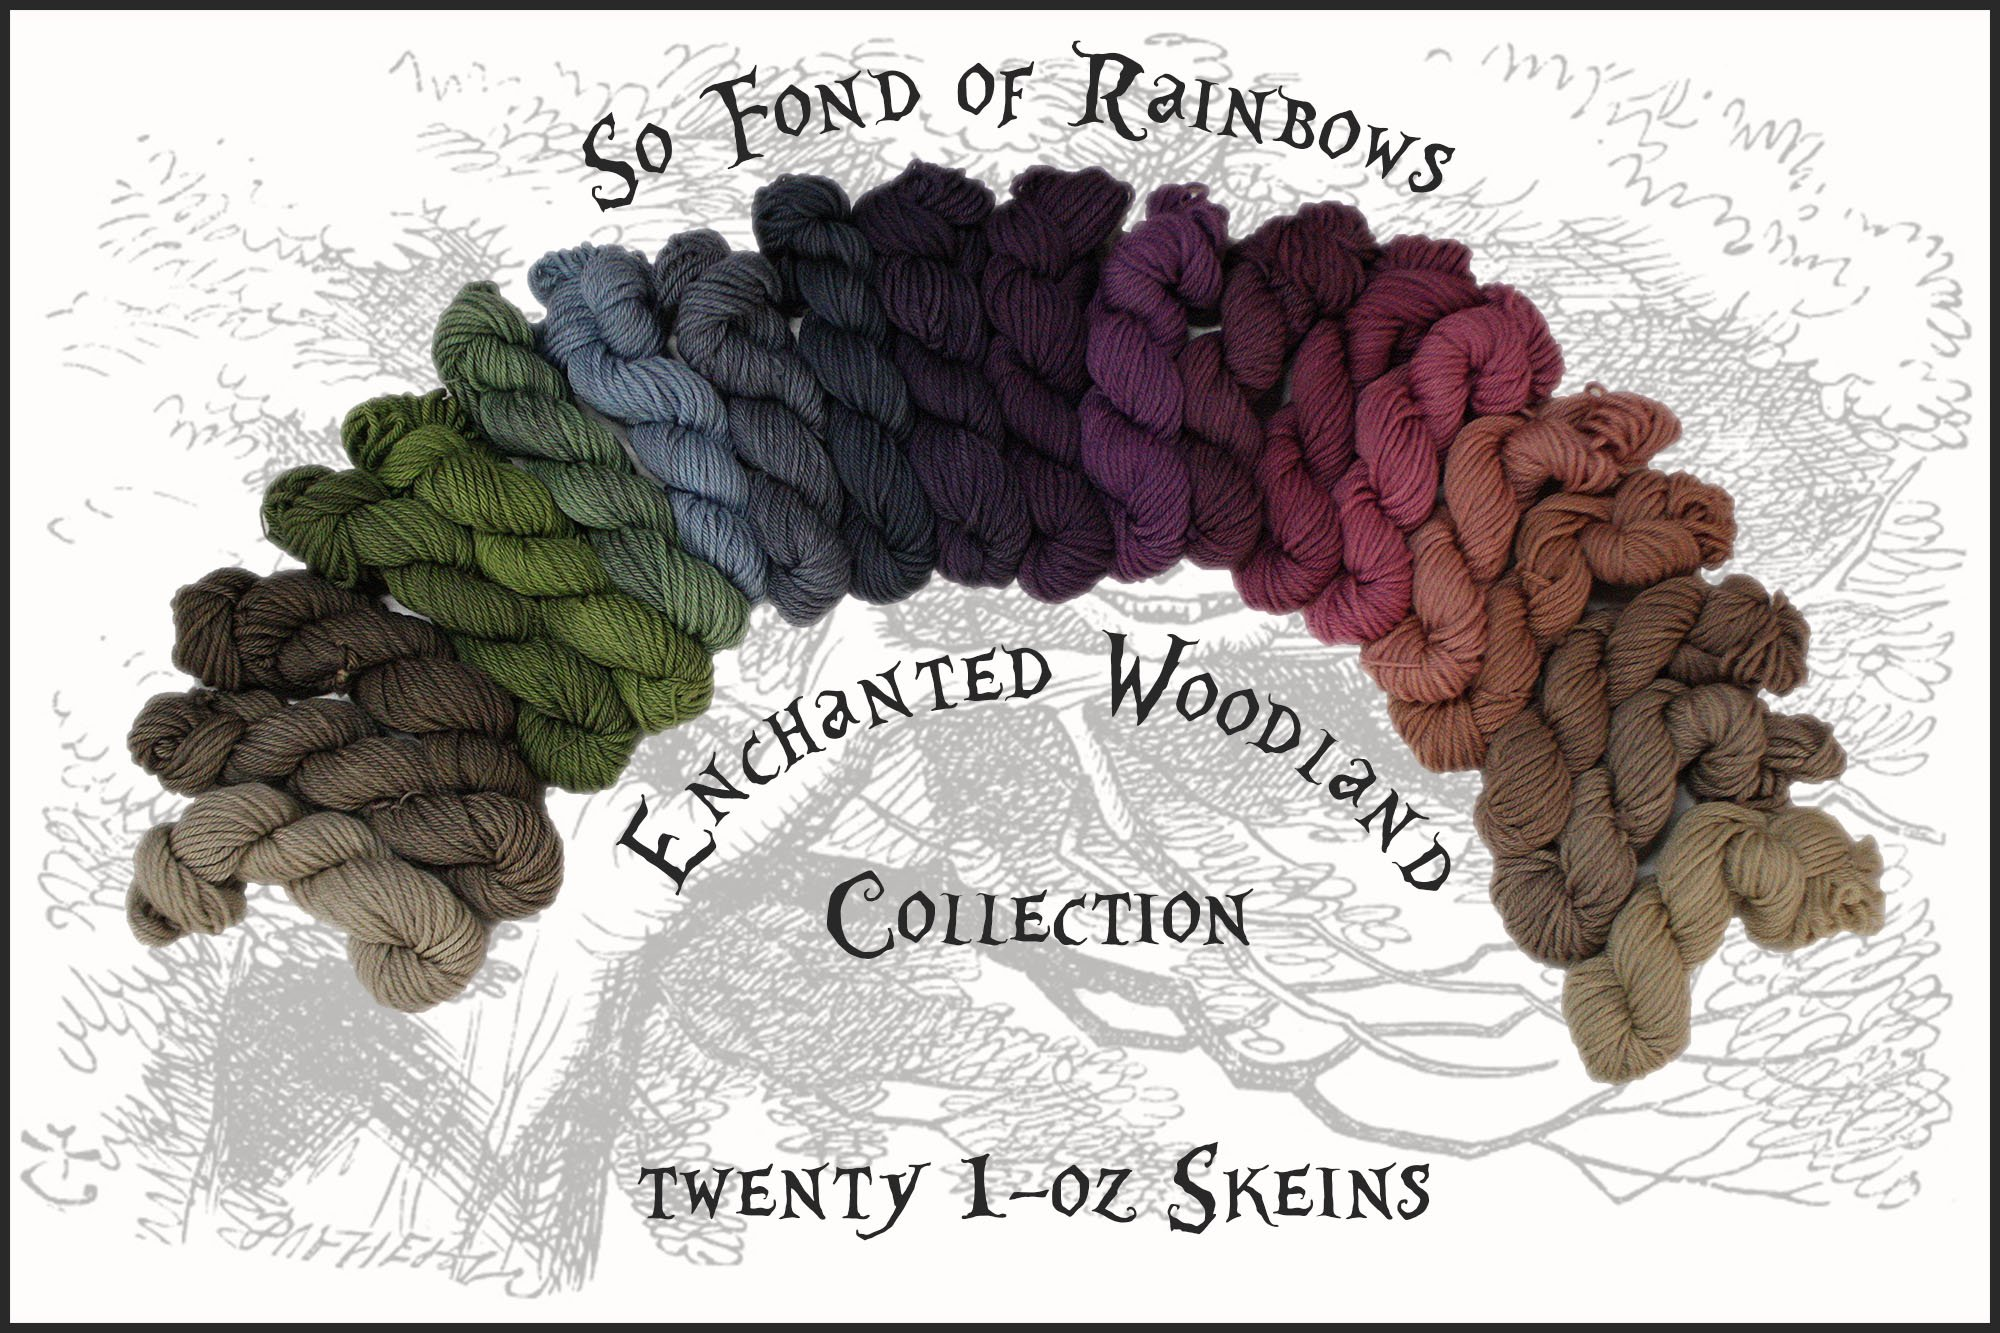 wonderland yarns so fond of rainbows  - worsted